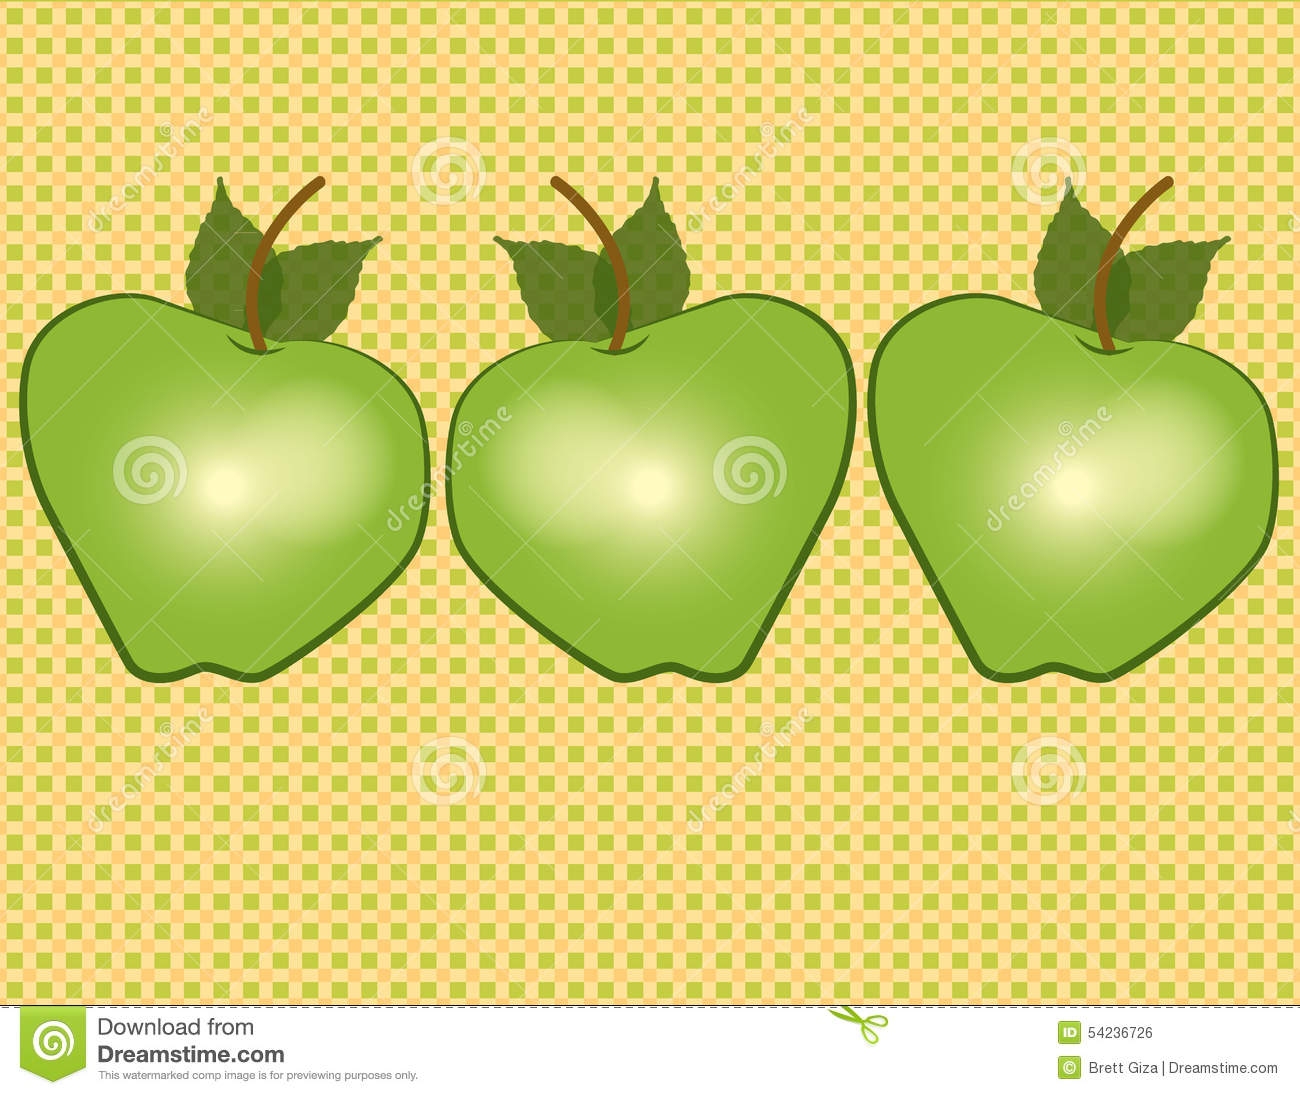 delicious green apple illustration - photo #15